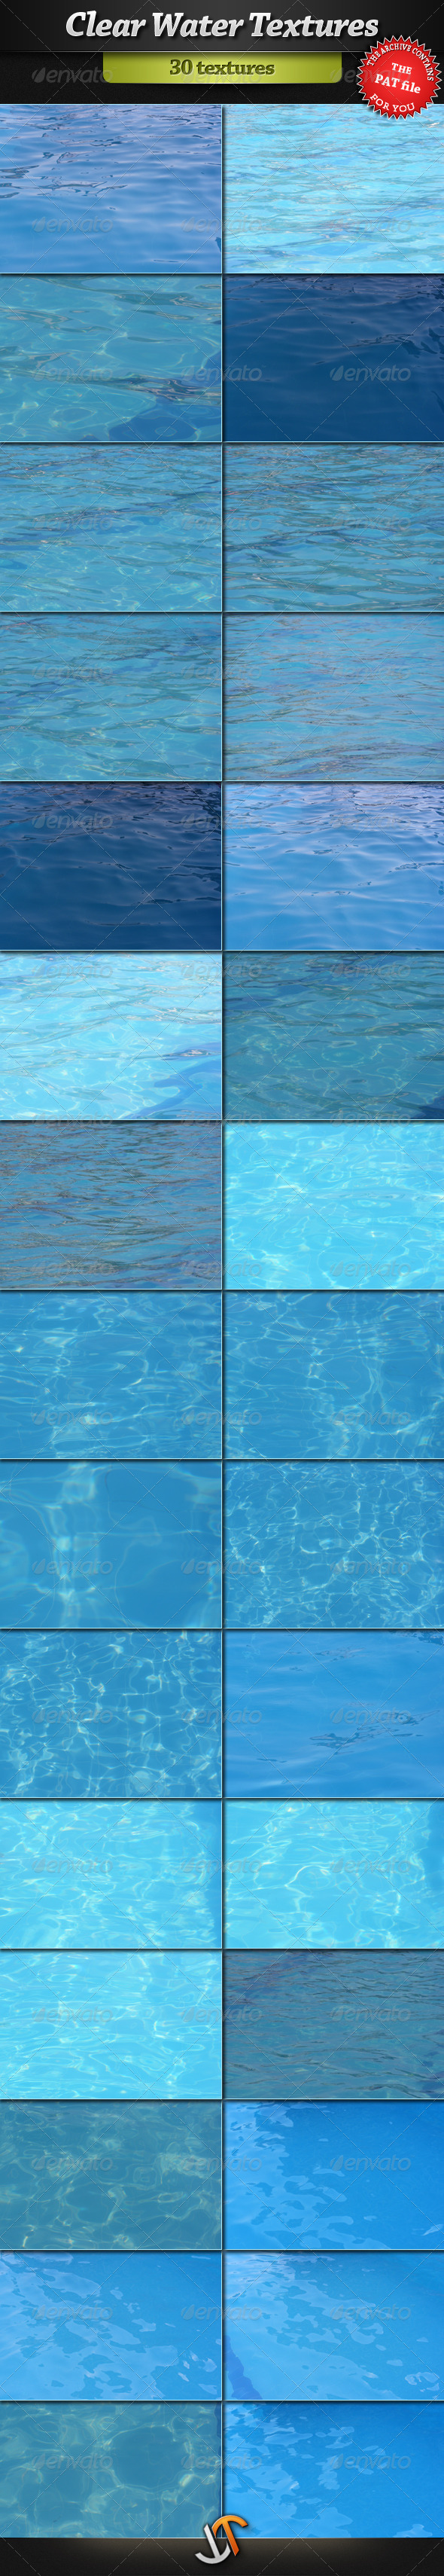 Clear Water Textures - Liquid Textures